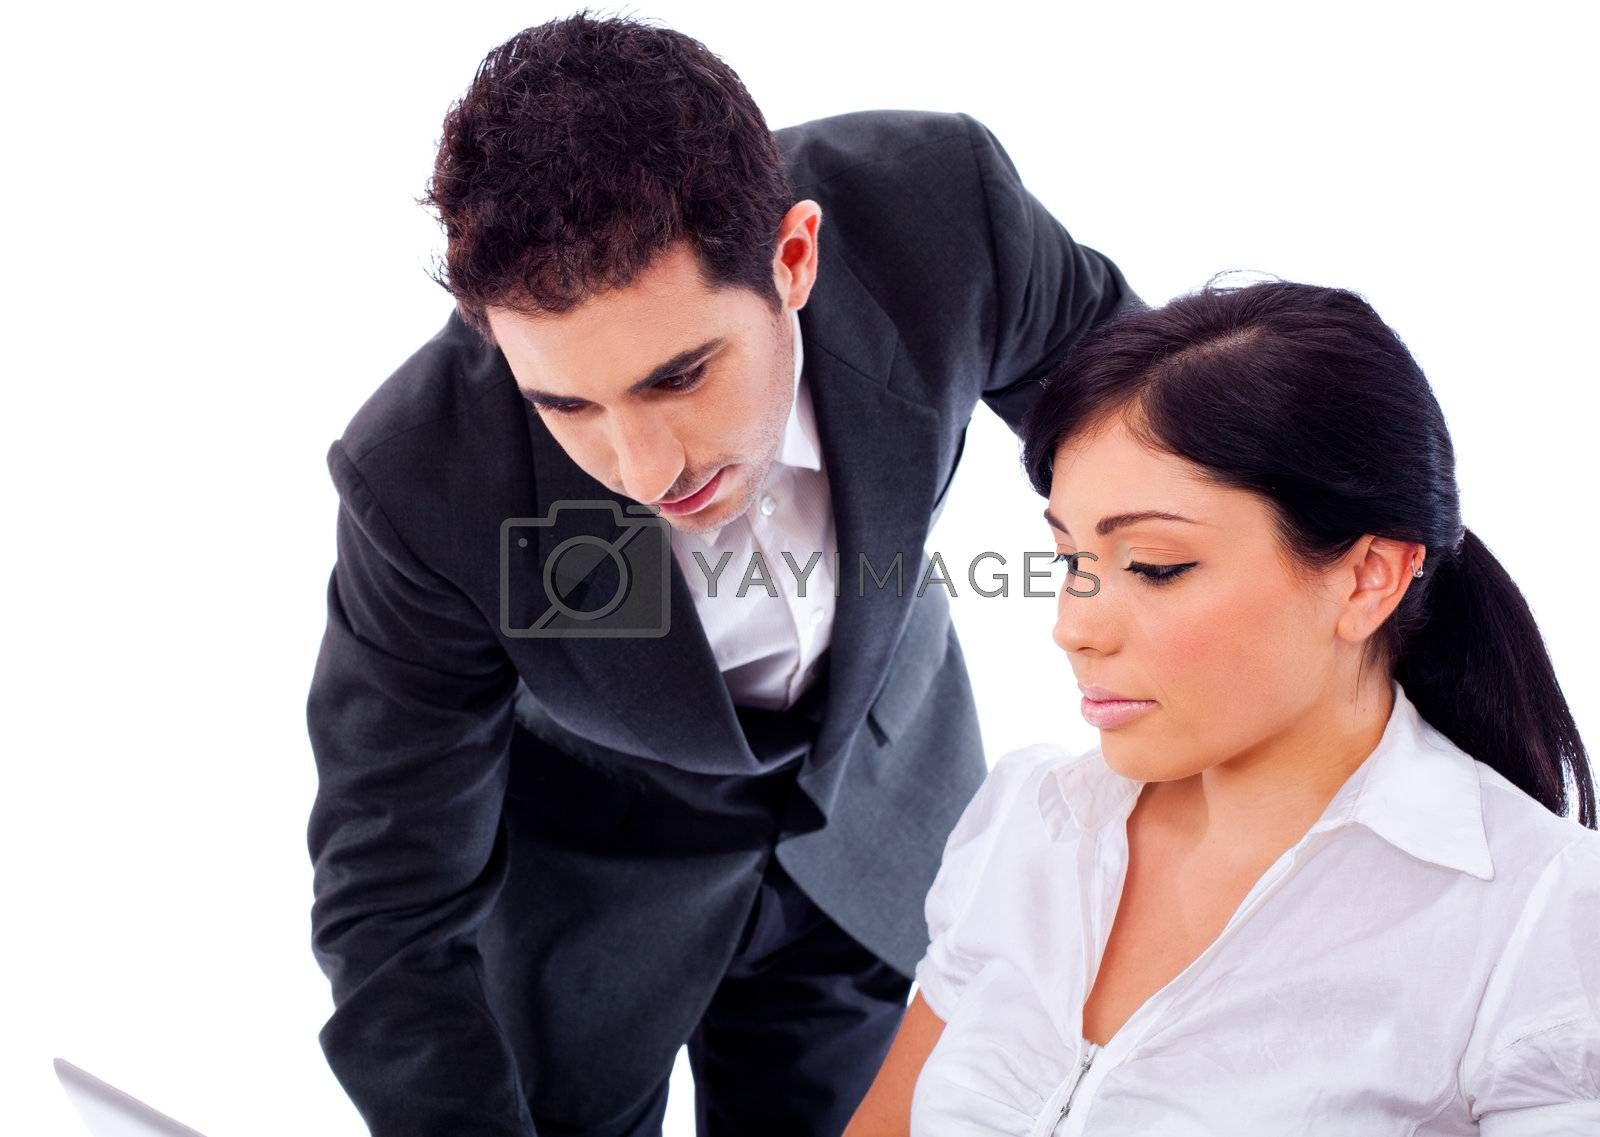 Closeup of corporate colleagues working on a isolated background